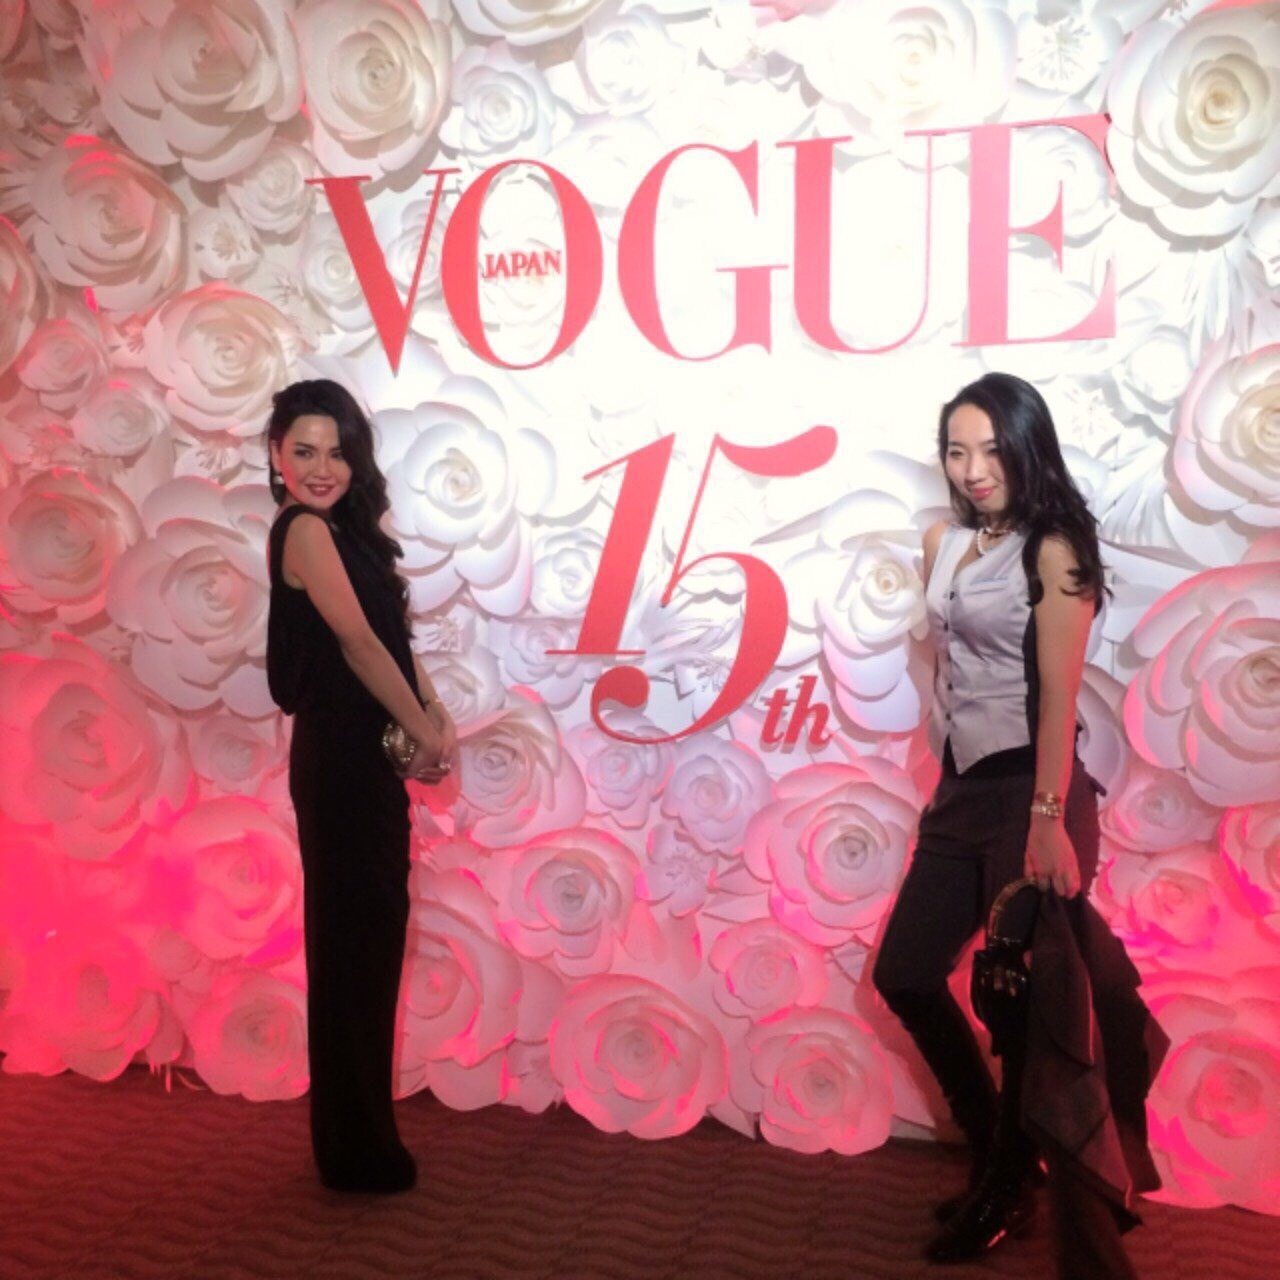 VOGUE JAPAN「 WOMAN OF THE YEAR 2014」_f0342875_17563651.jpg